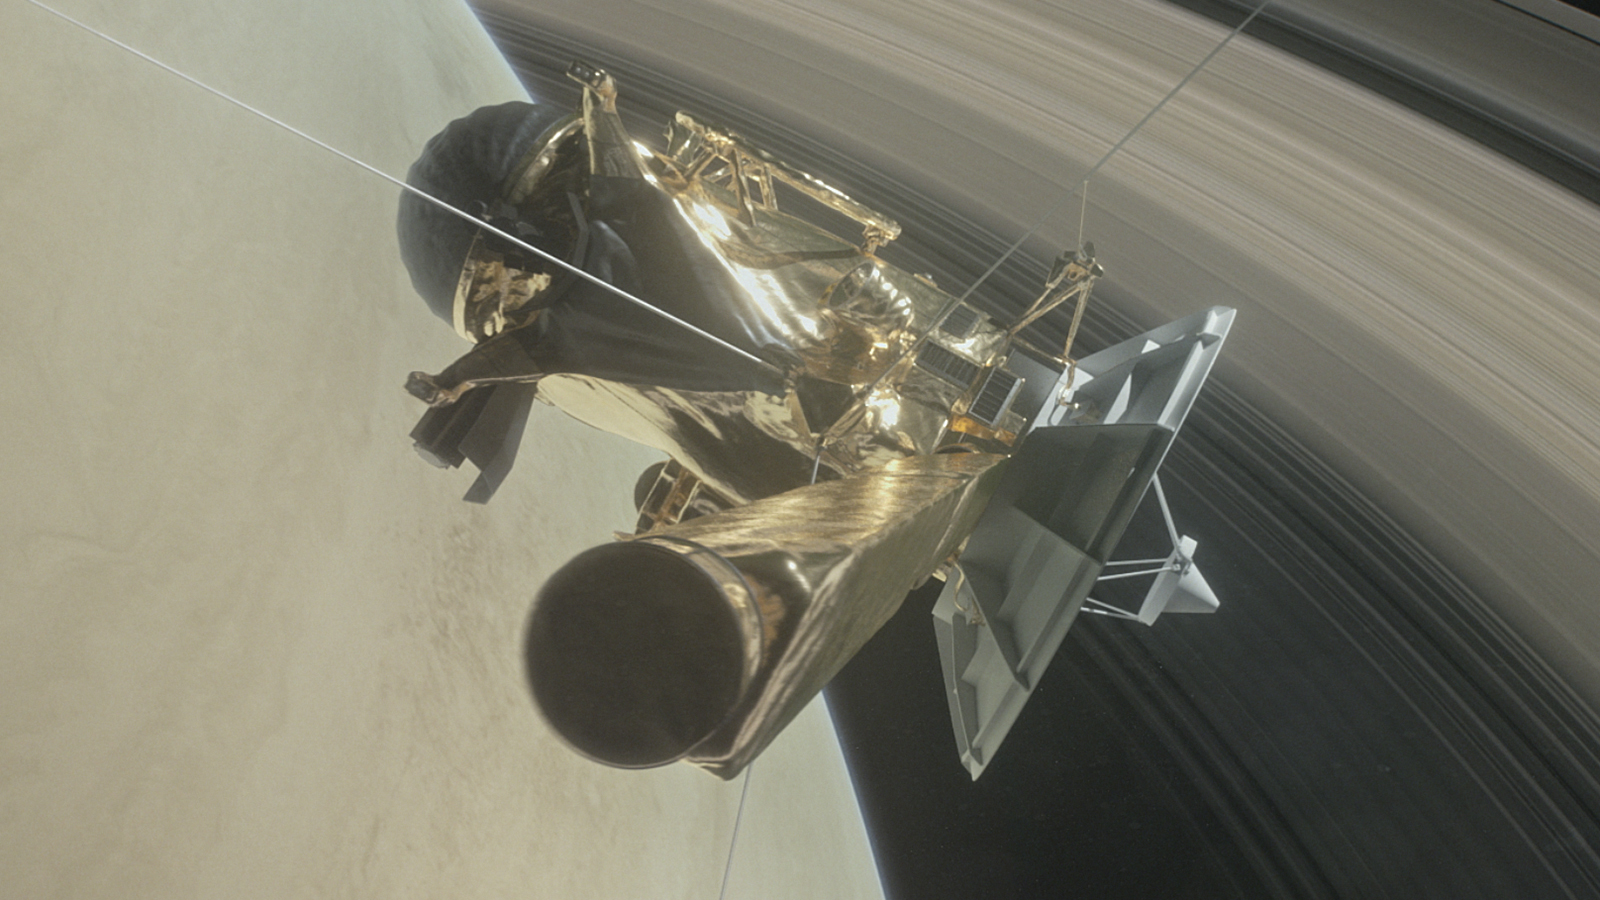 Downloadable fact sheet about Cassini end of mission.